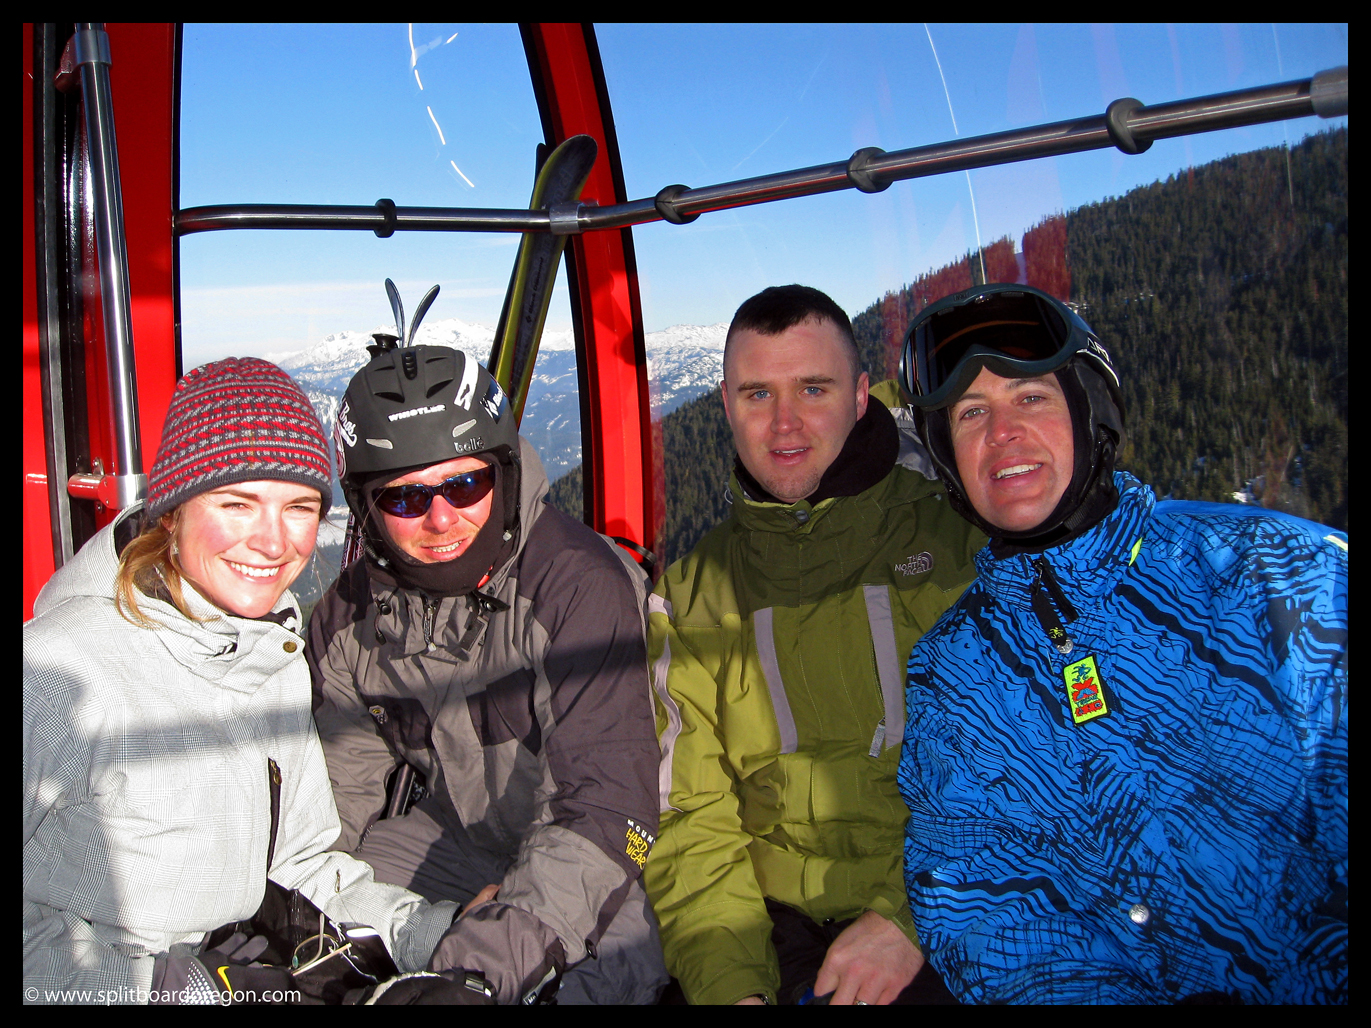 The crew on the Peak to Peak Gondola